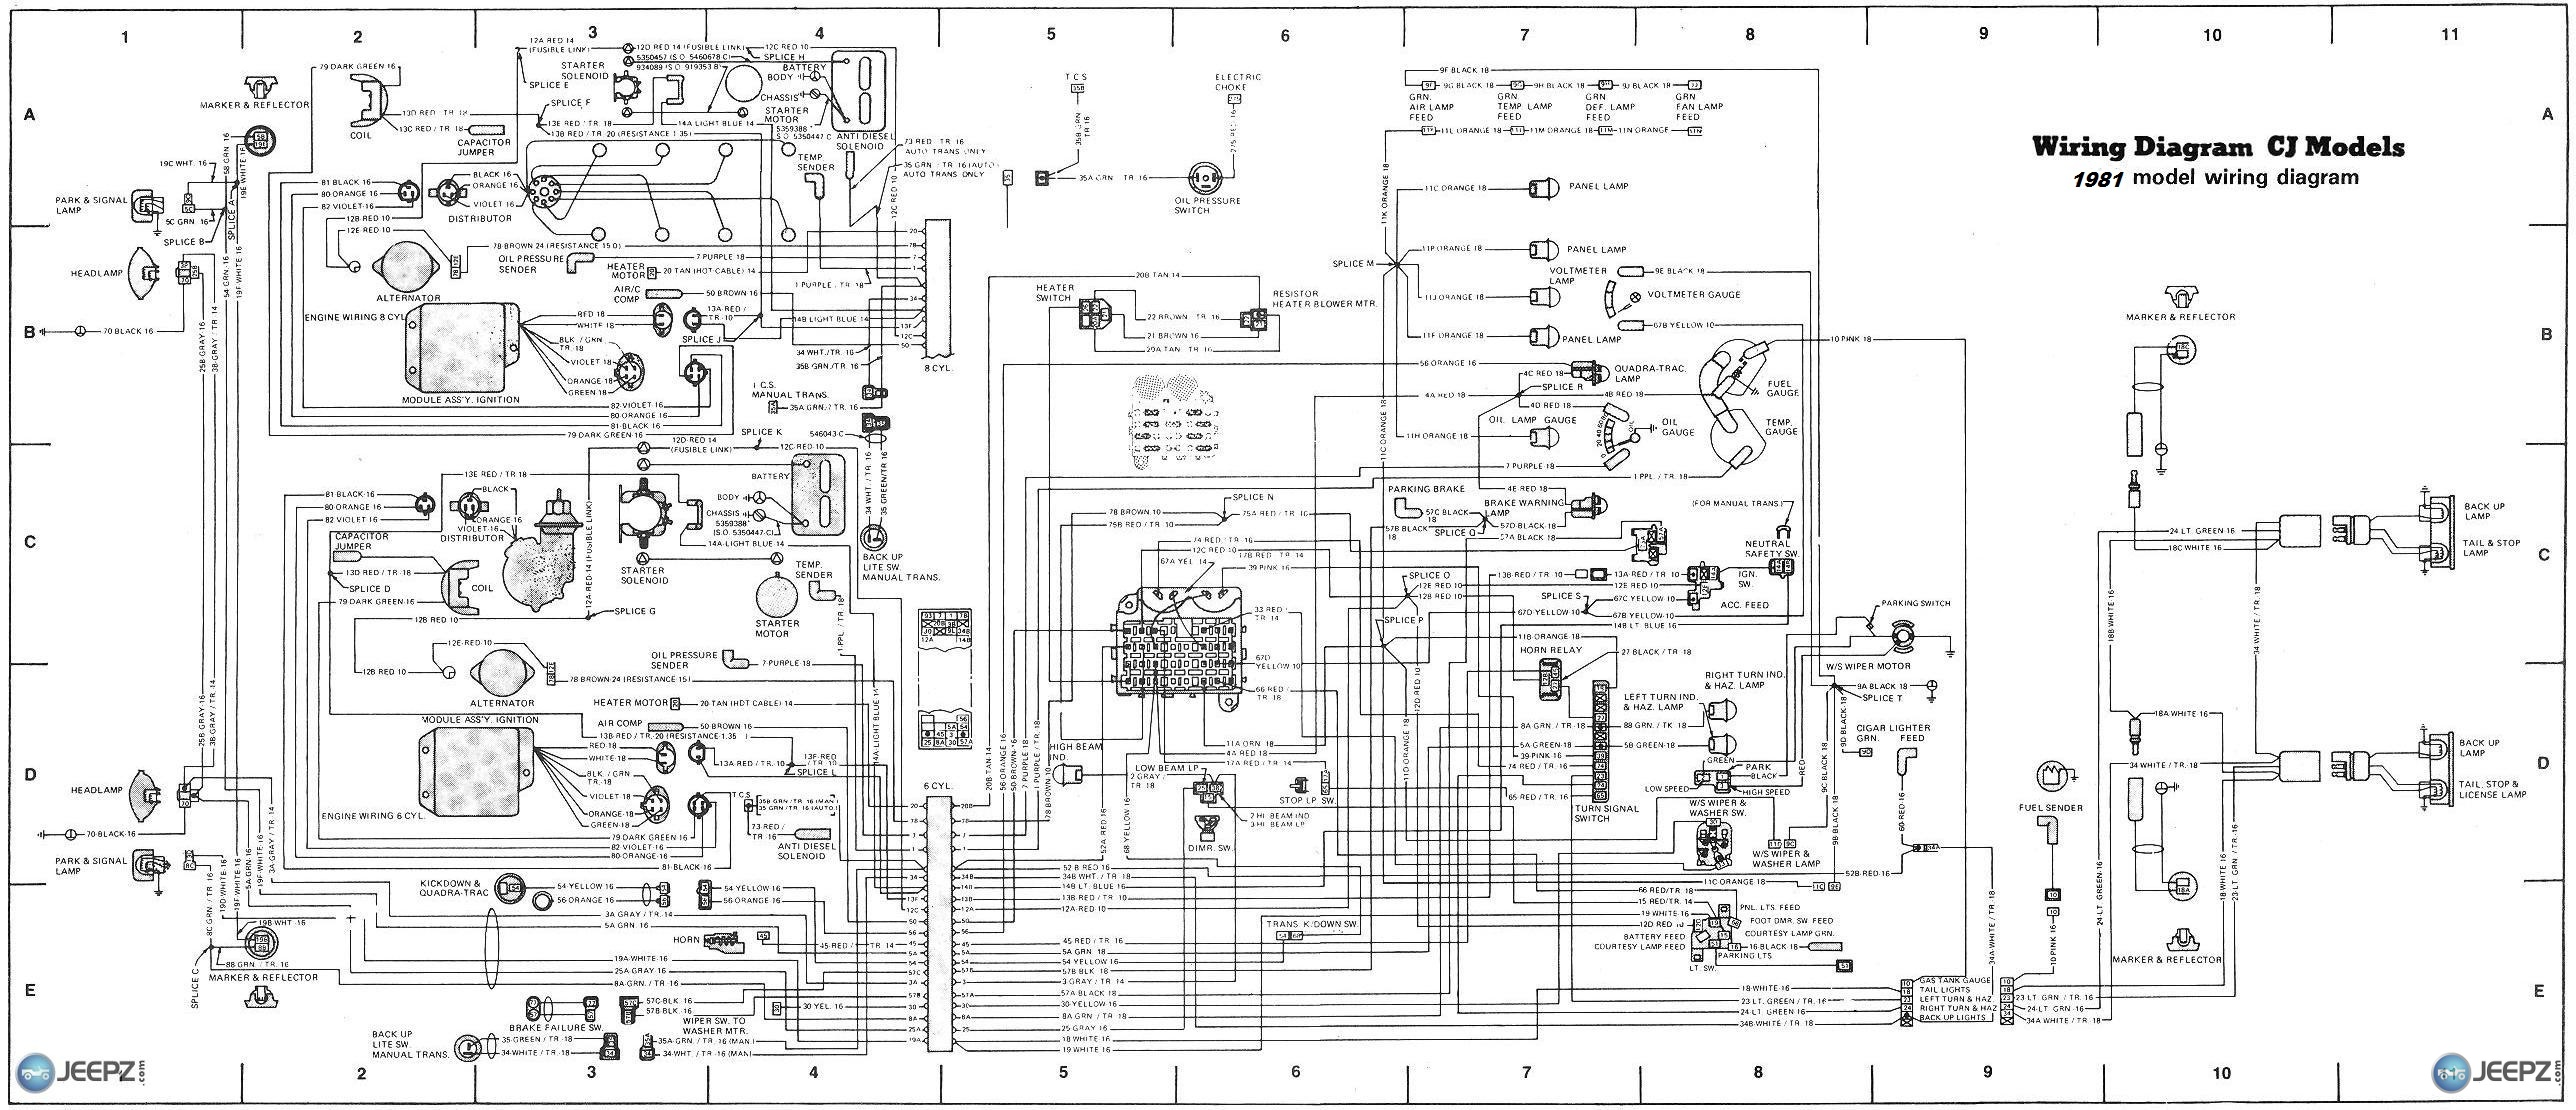 85 cj7 wiring harness wiring diagrams schematics wiring harness jeep cj7 1981 jeep cj5 4 cyl wiring diagram wiring diagram jeep cj wiring diagram wiring diagram 1981 jeep cj5 transmission diagram 1981 jeep cj5 4 cyl wiring